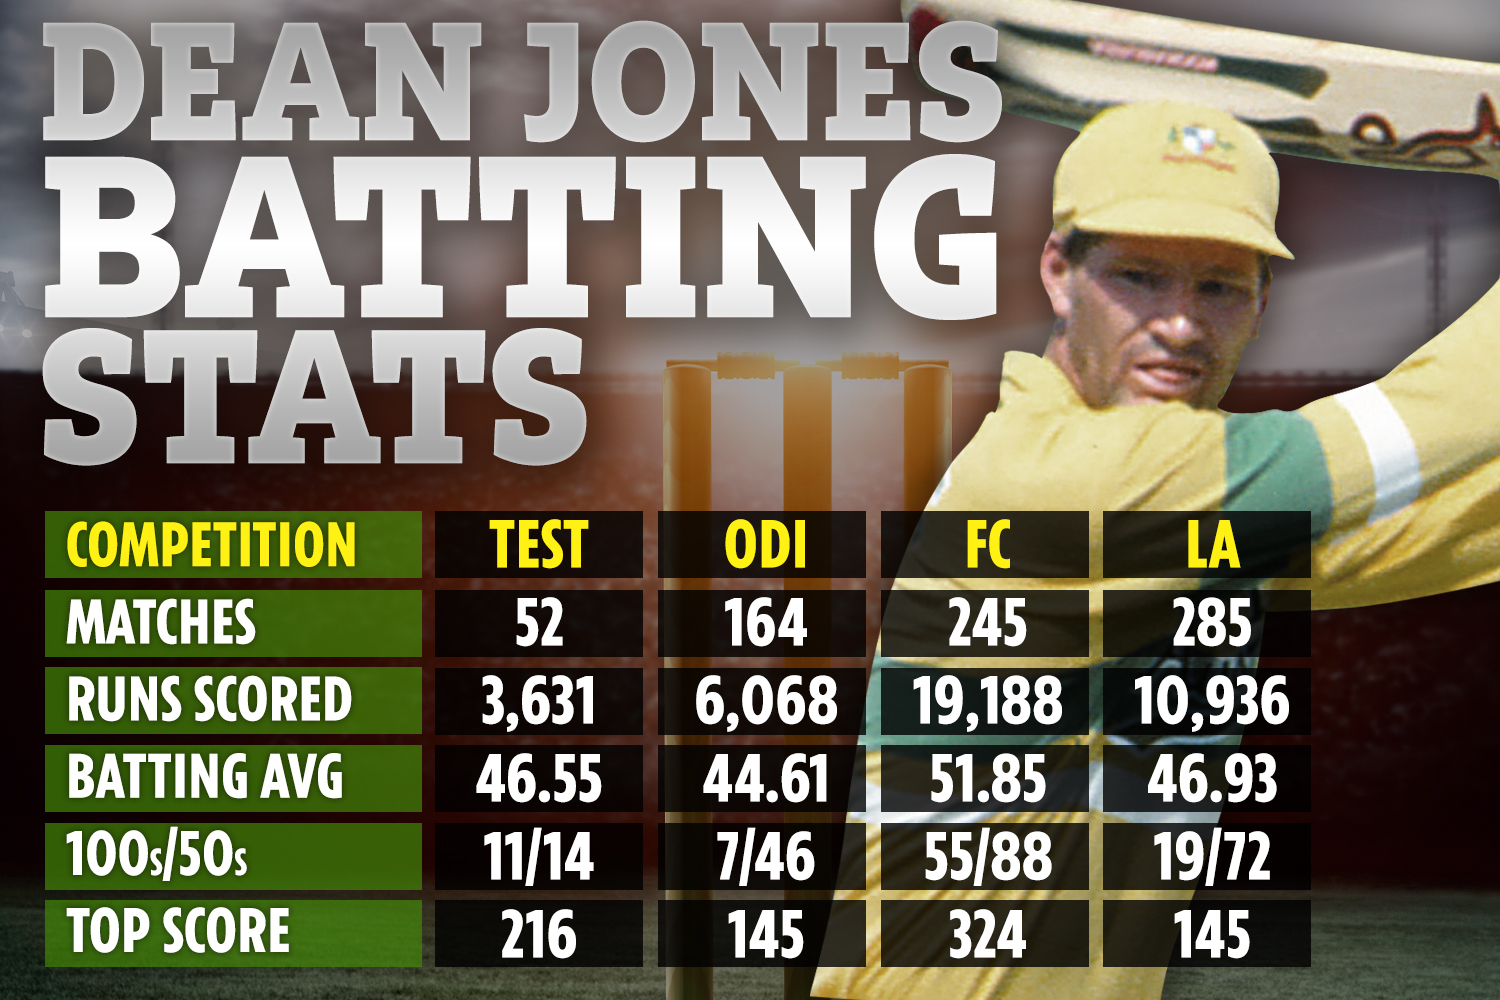 How Dean Jones performed in Test, ODI, First Class and A List cricket during his illustrious career